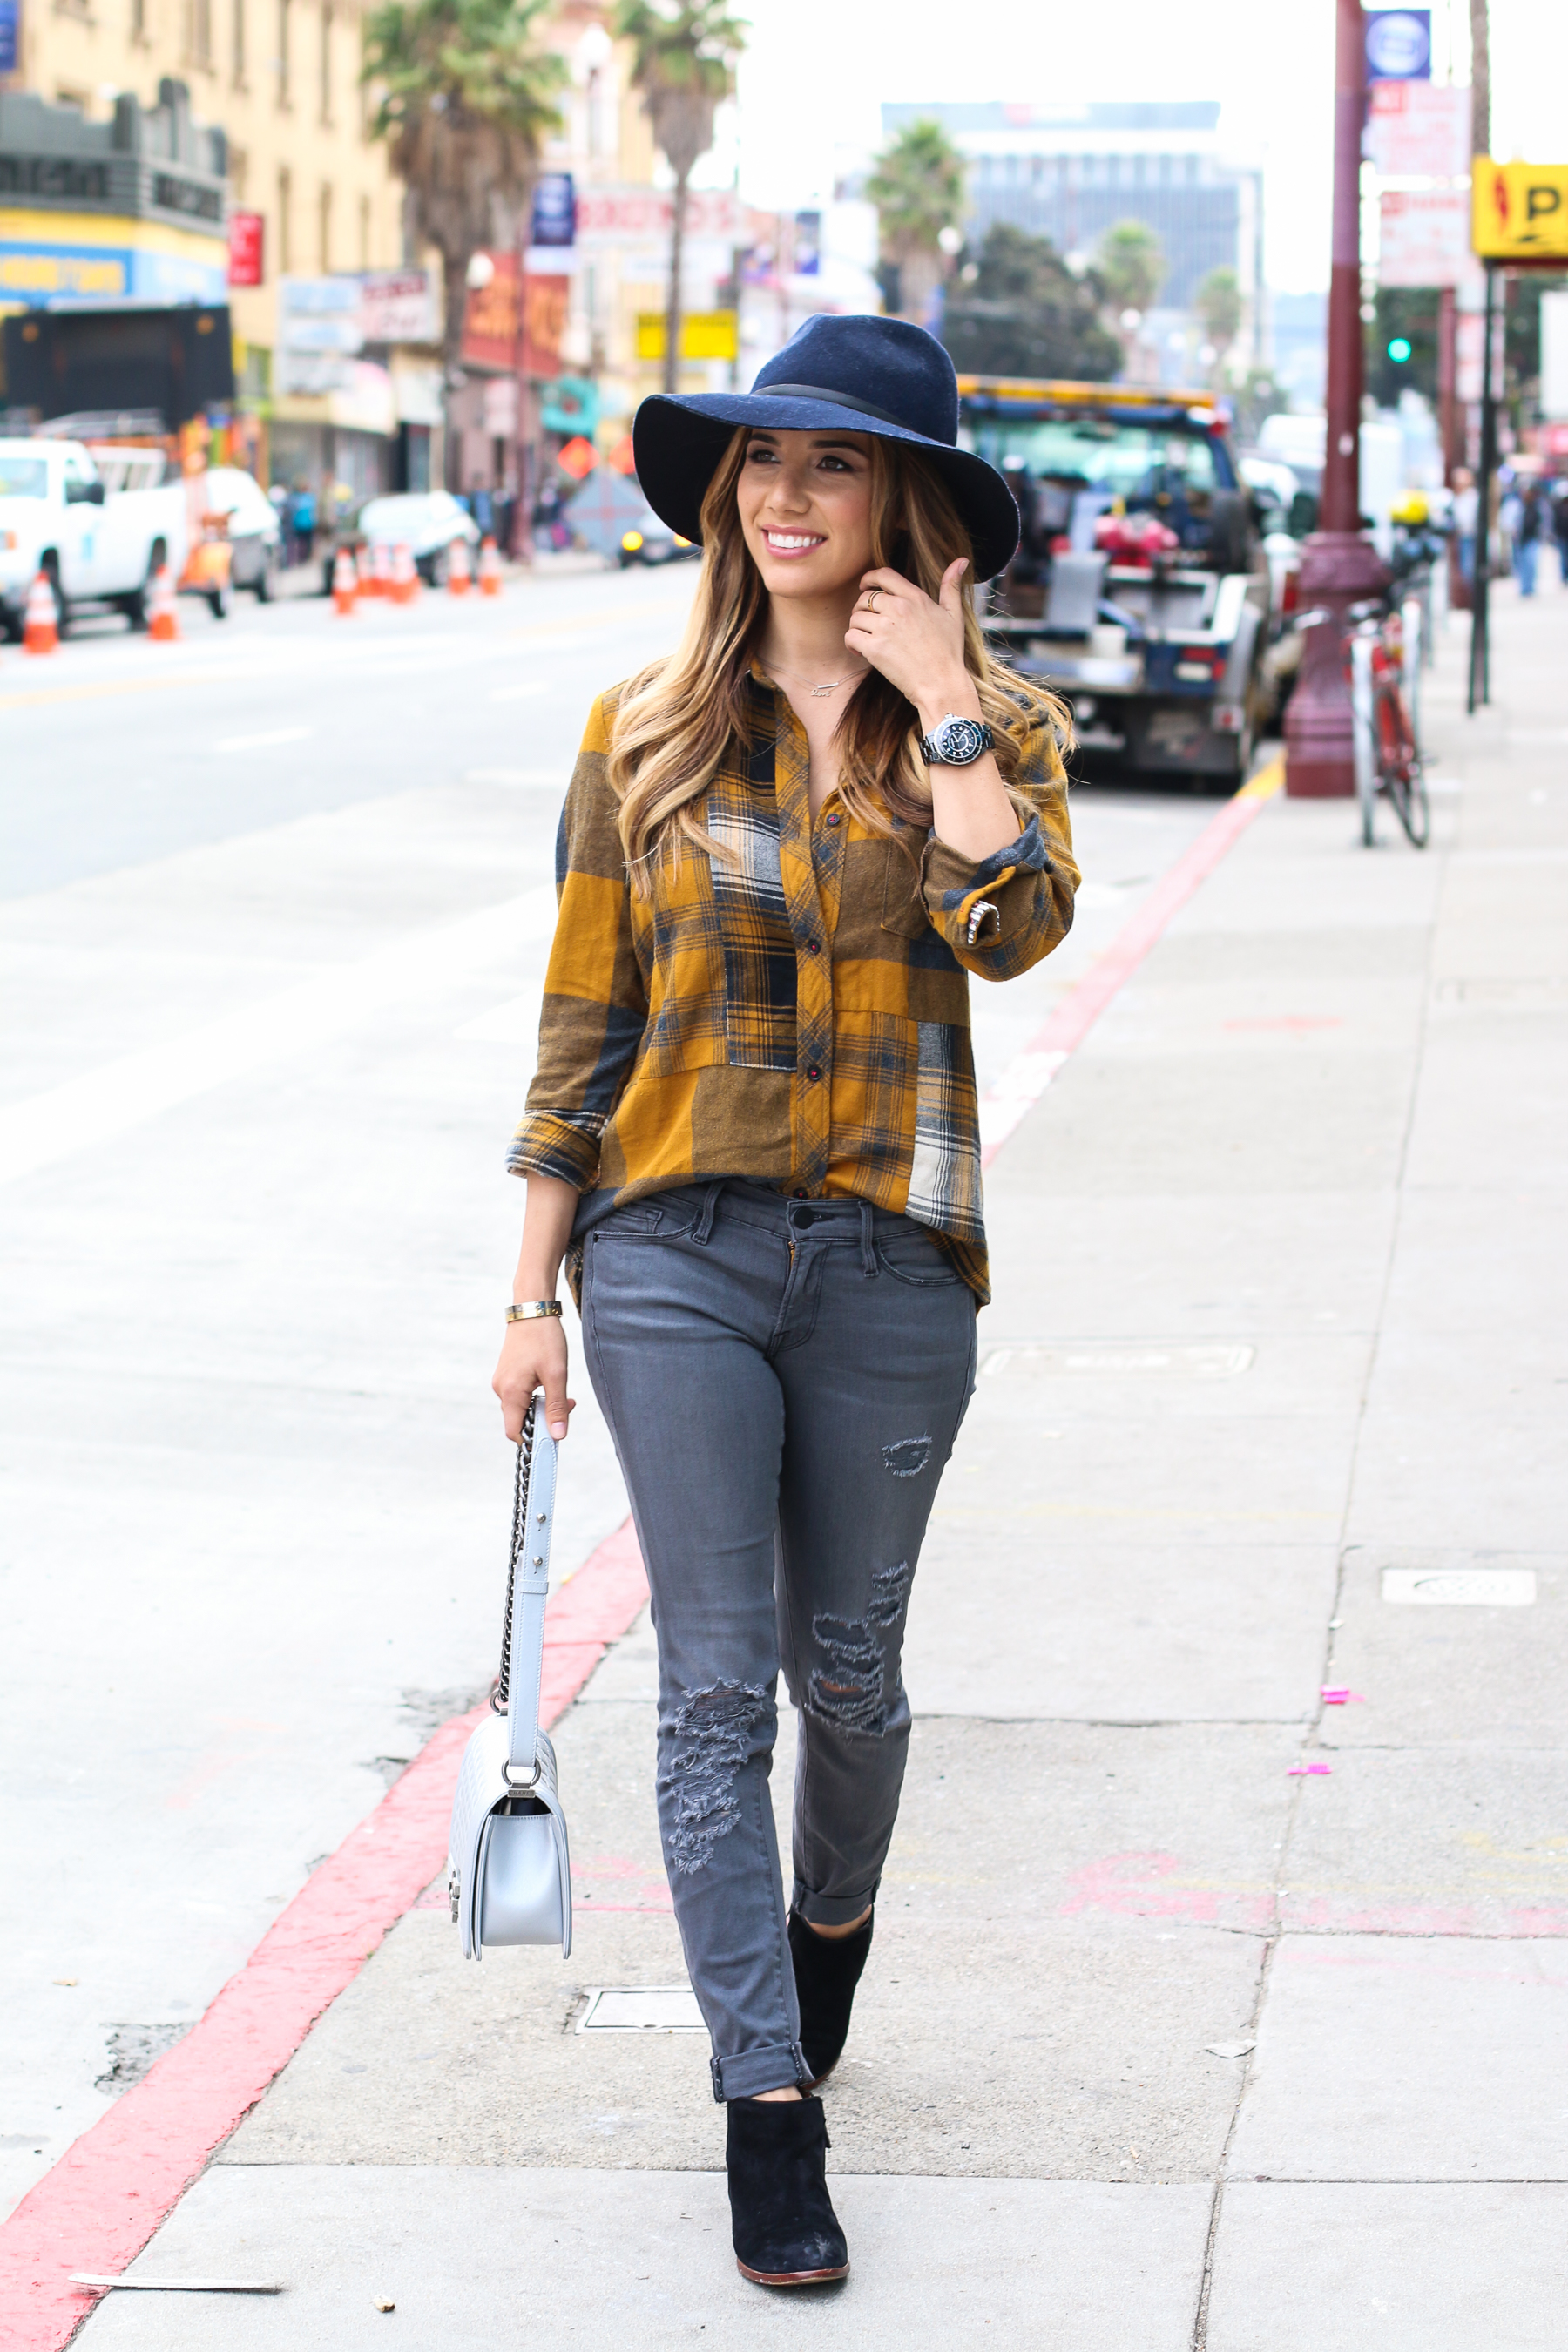 Ariana-Lauren-Fashion-Born-Blogger-Plaid-Shirt-Gray-Jean-Mission-District-San-Francisco-Photography-by-Ryan-Chua-6954